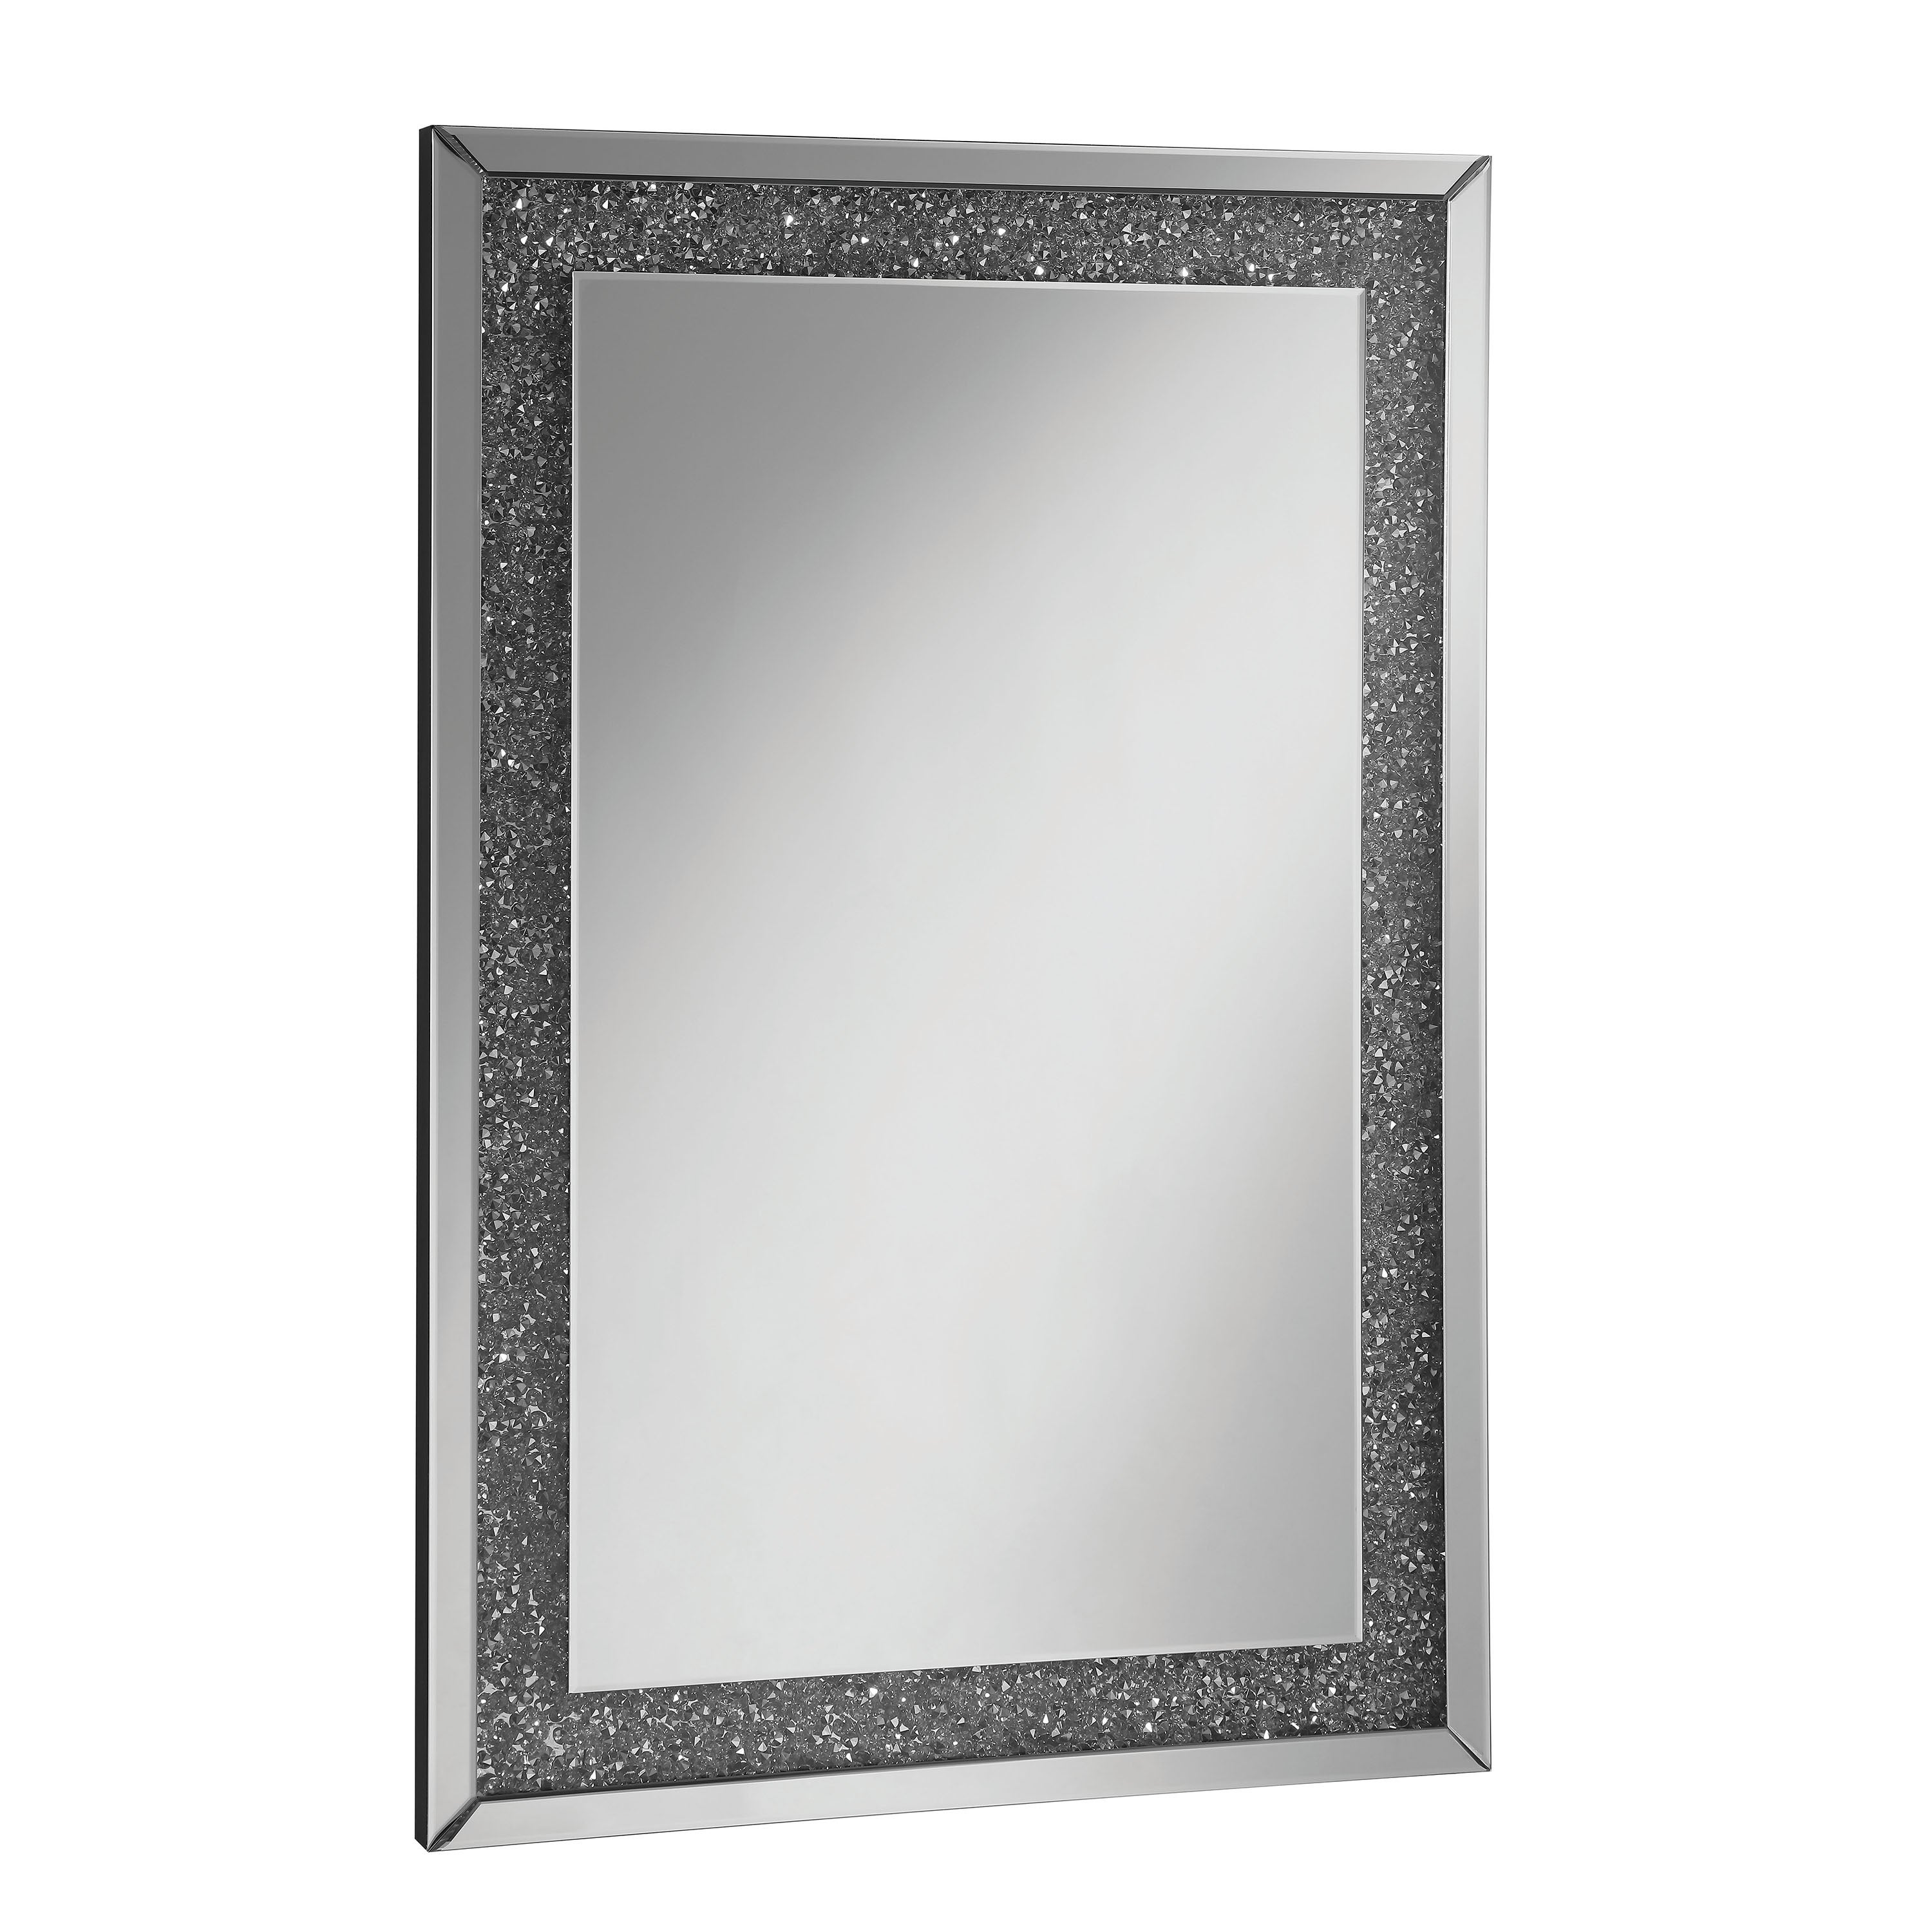 Furniture Of America Huck Silver 4 Piece Accent Table Set With Mirror Overstock 25445271